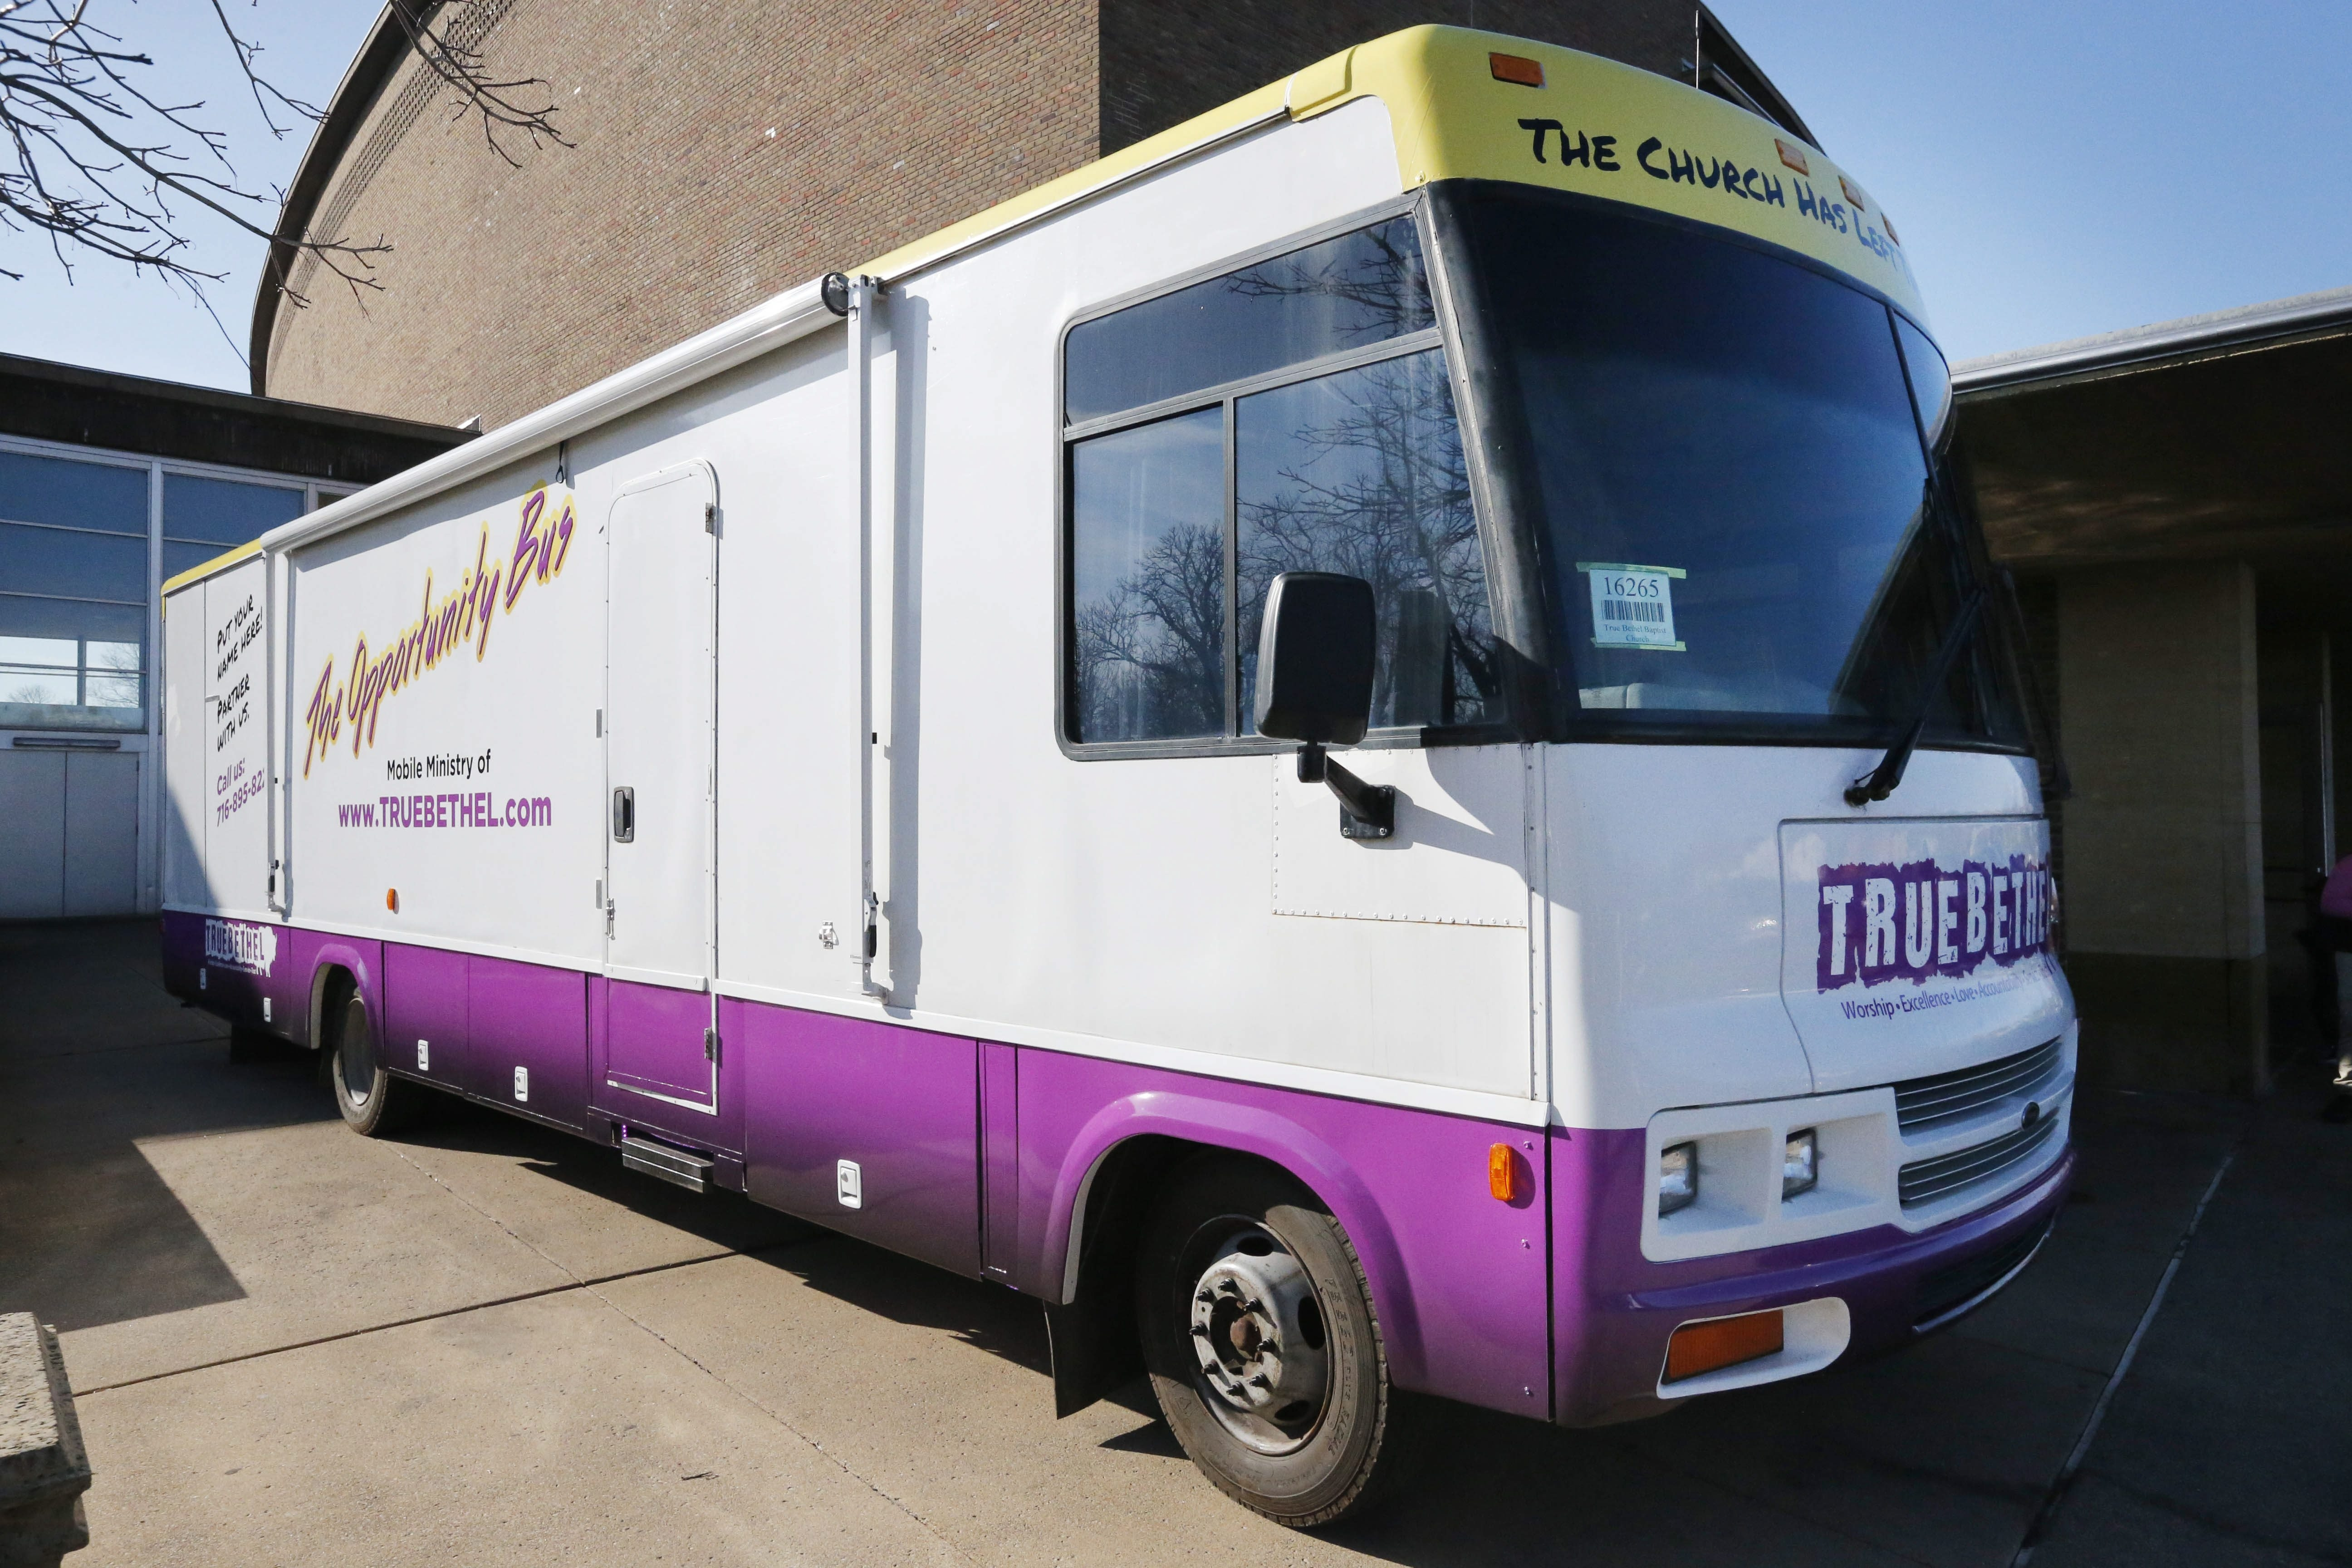 The True Bethel Baptist Church's 'Opportunity Bus' parked outside Easter Sunday service at Kleinhan's Music Hall, March 27, 2016.  (Derek Gee/Buffalo News)